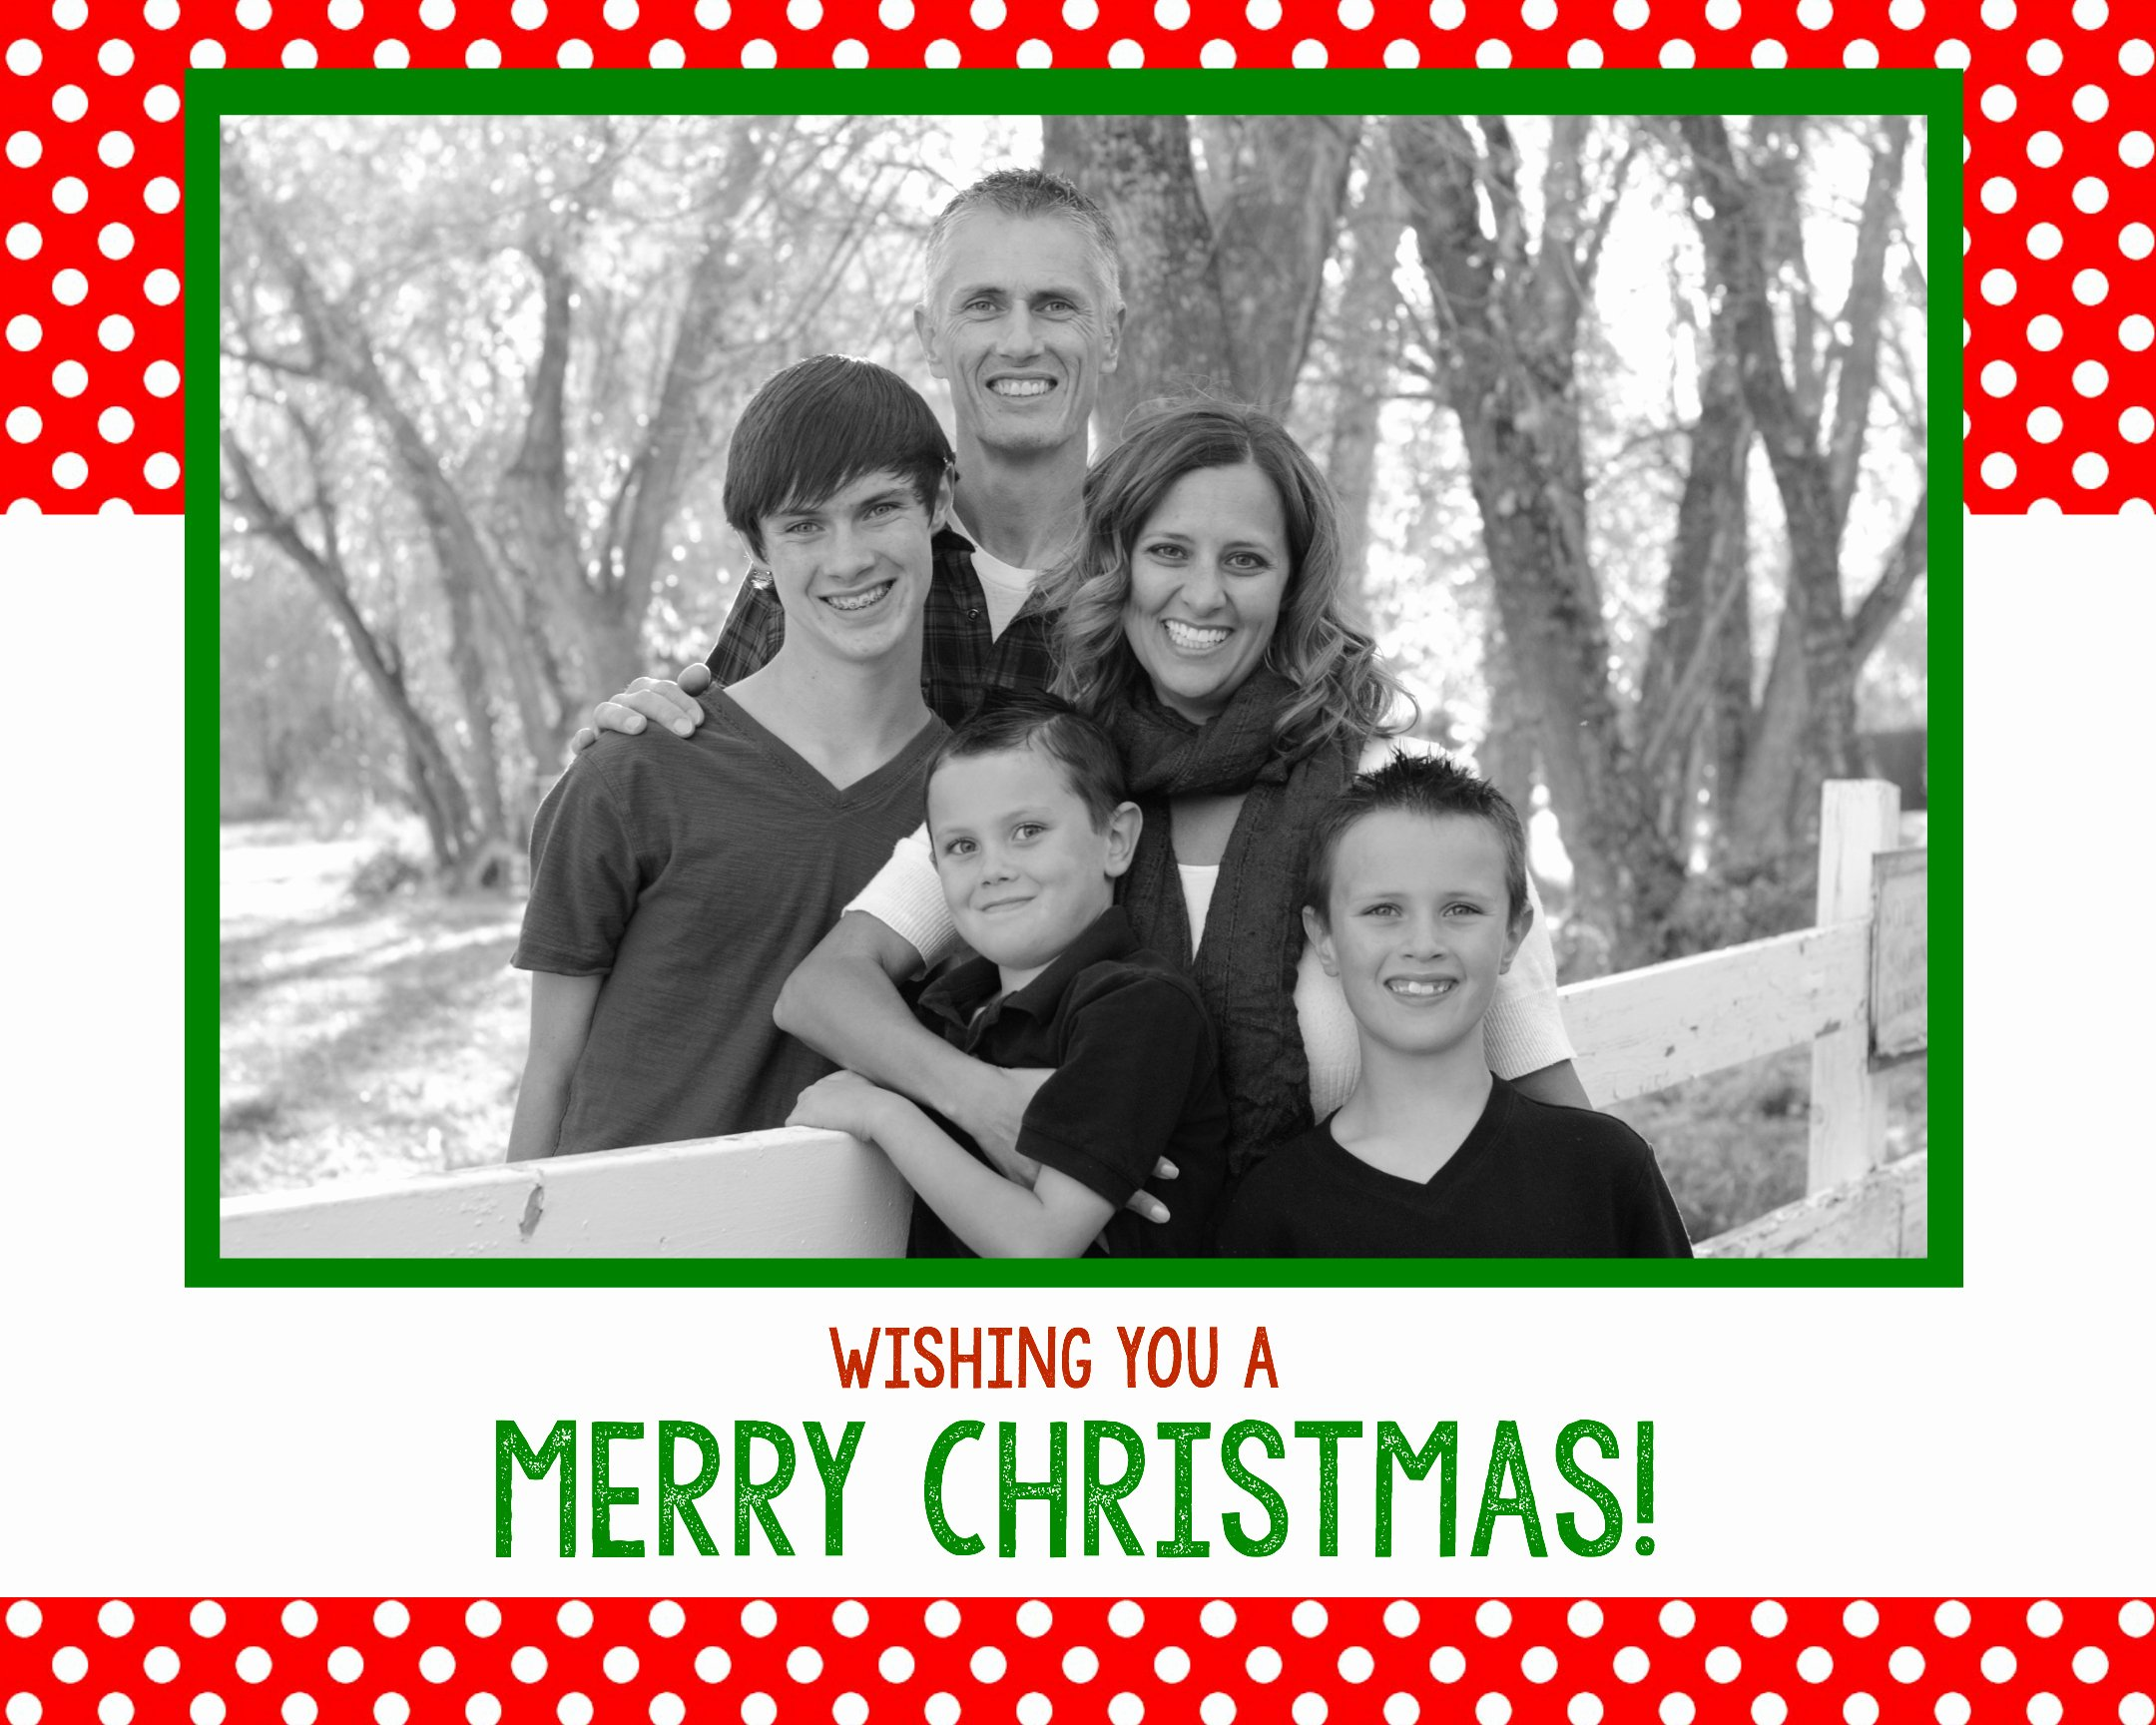 Free Photo Christmas Card Templates Unique Free Christmas Card Templates Crazy Little Projects